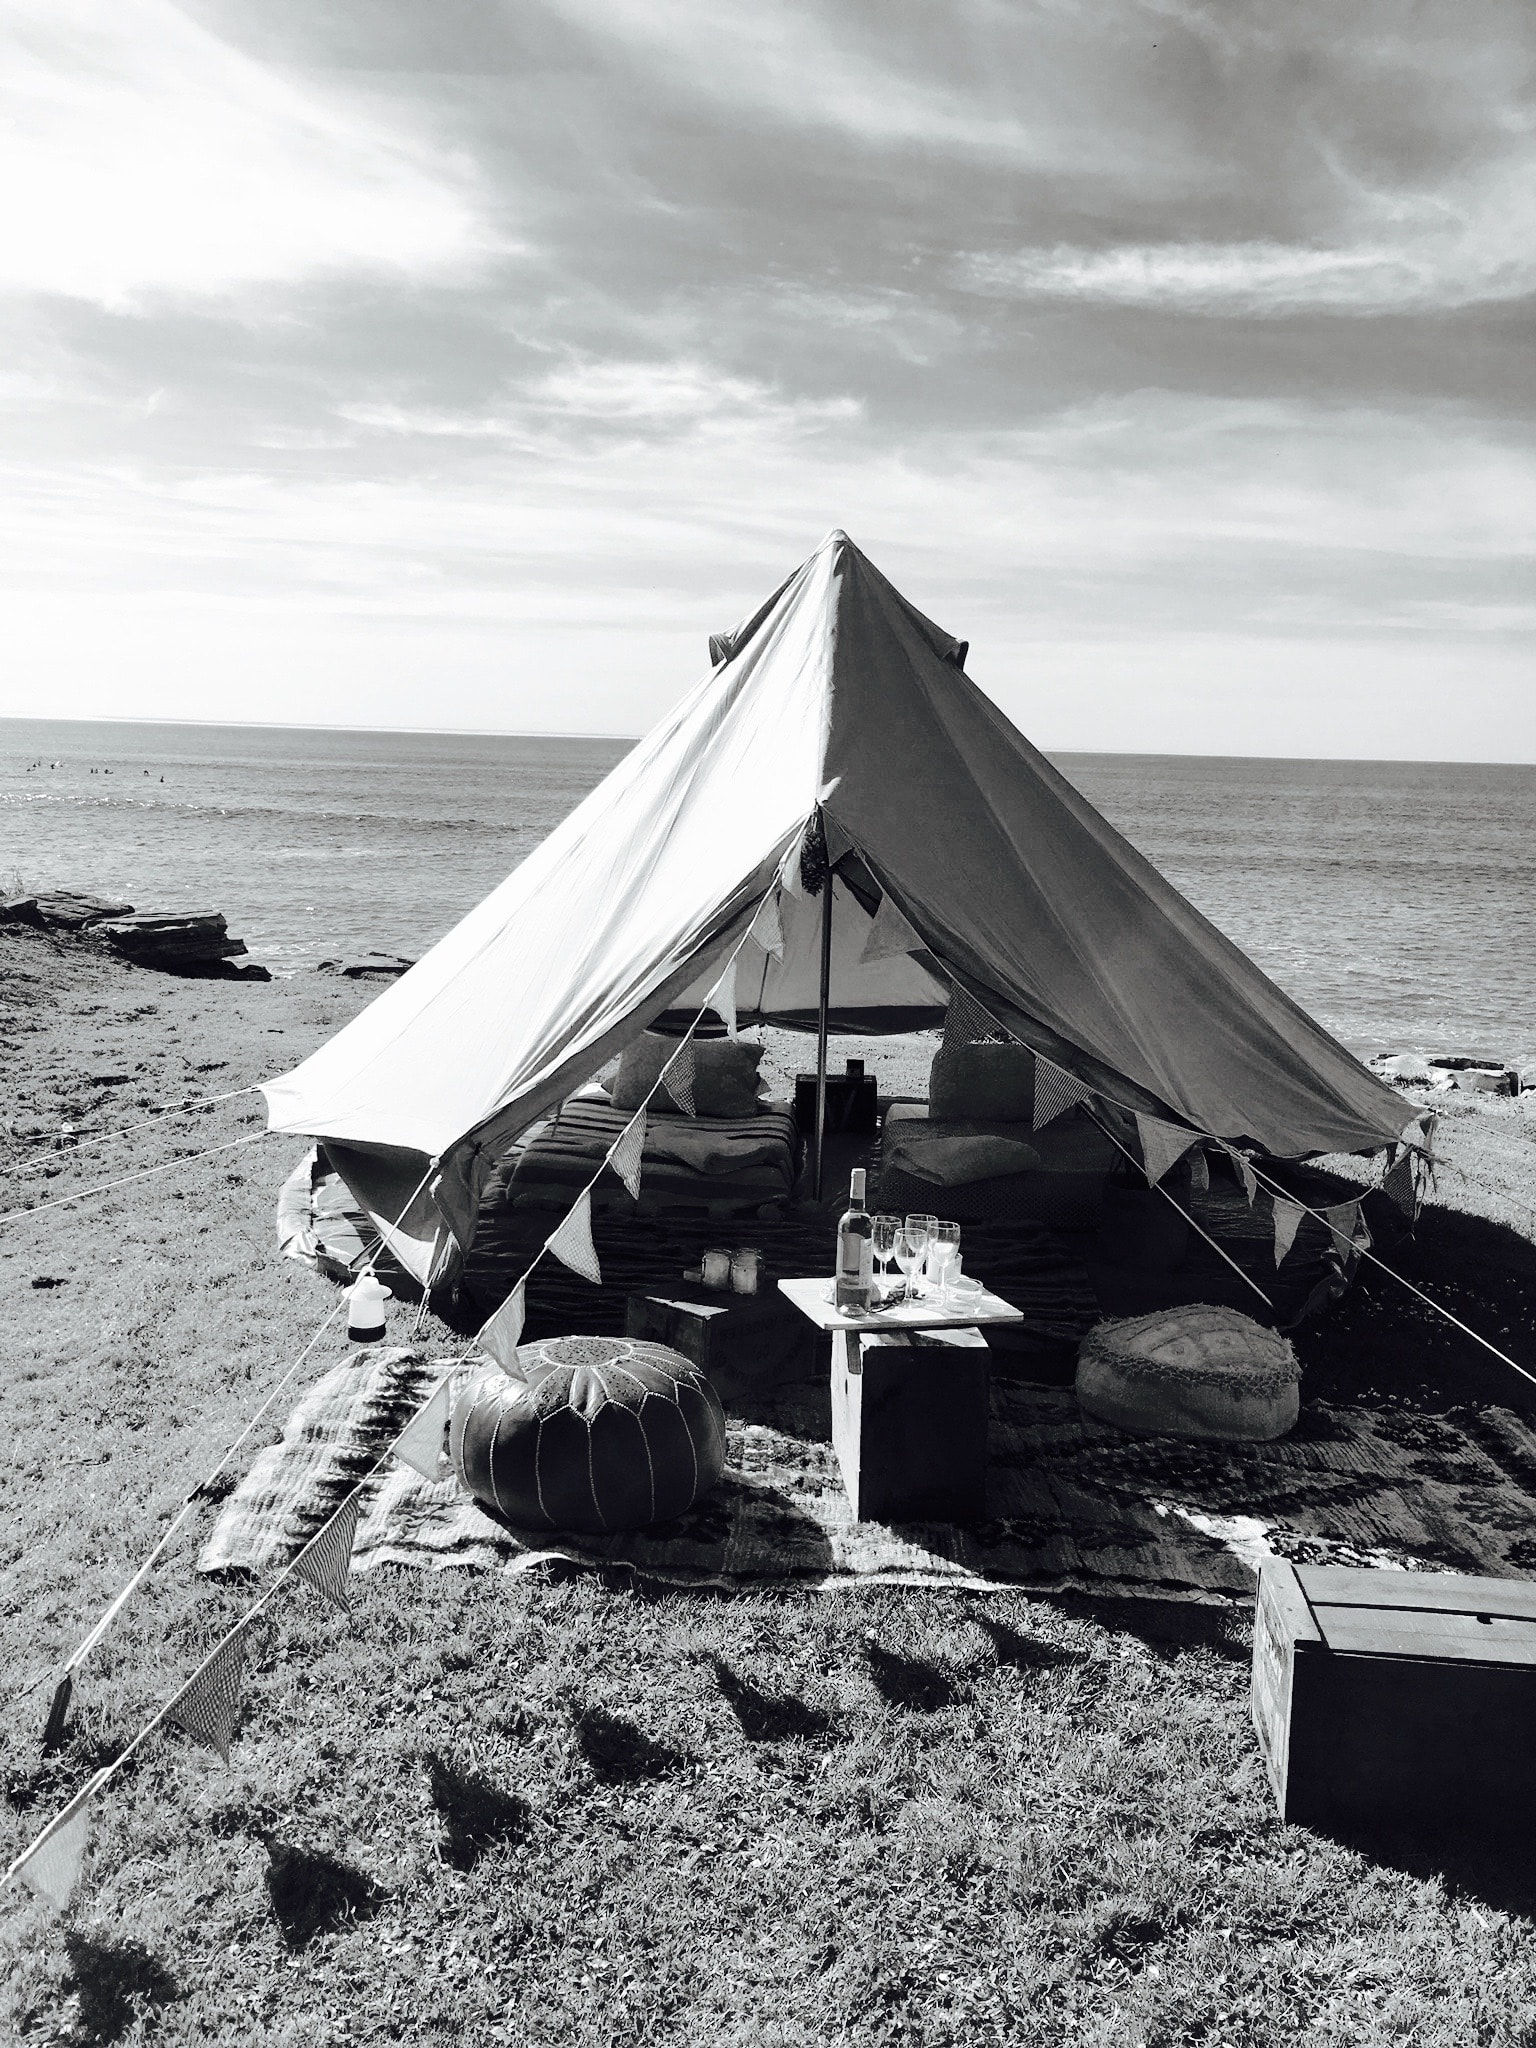 SNAZZY-CAMP-BIARRITZ-ACCOMMODATION-BASQUE-COUNTRY-CAMPING-GLAMPING-FRANCE-HOLIDAYS (2).jpg